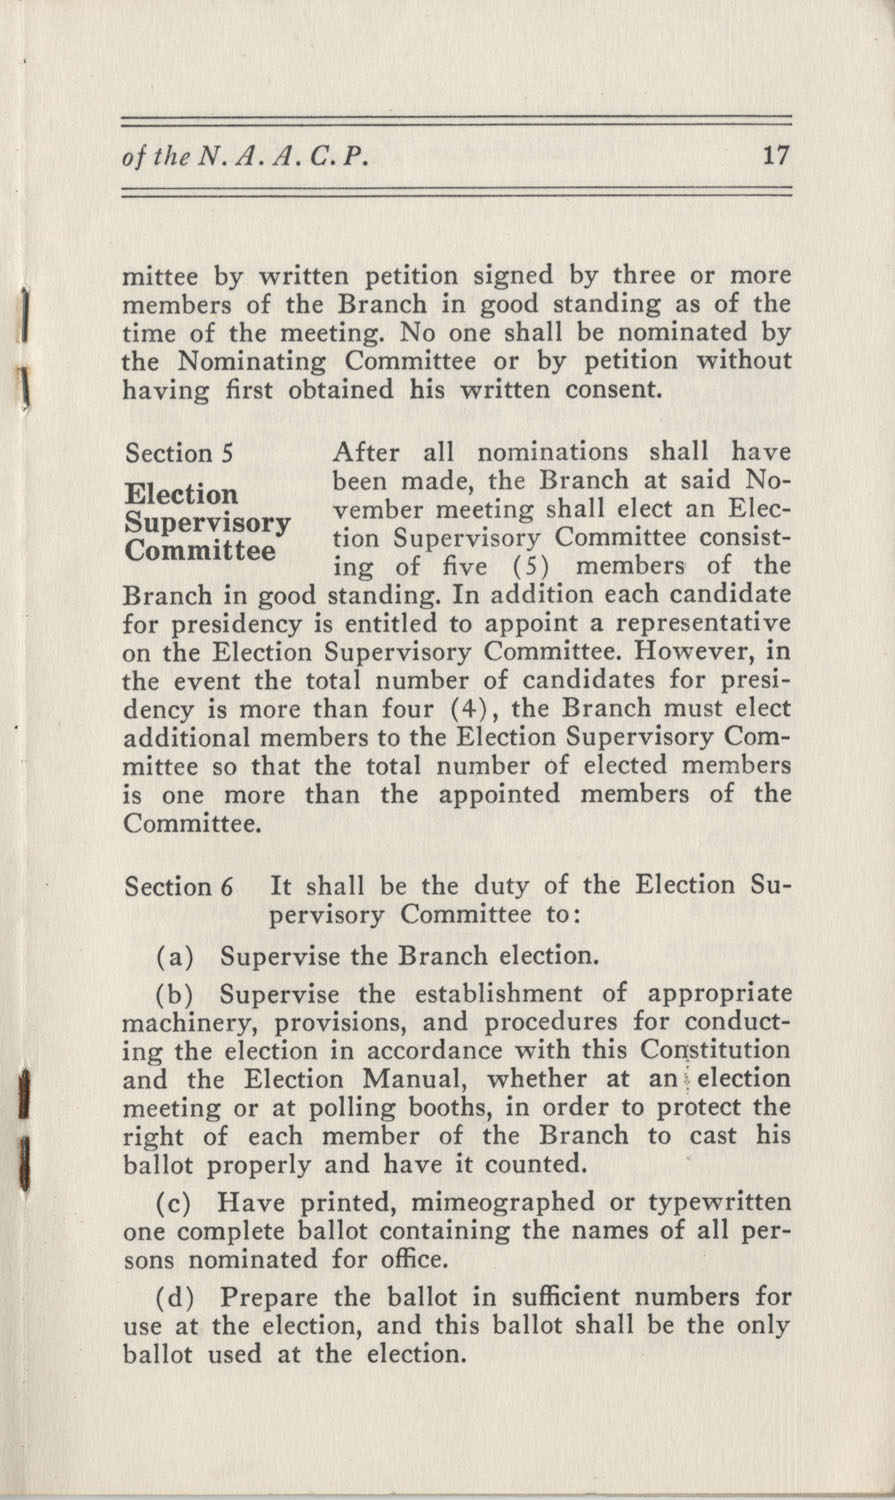 Constitutions and By-Laws, September 1960, Page 17